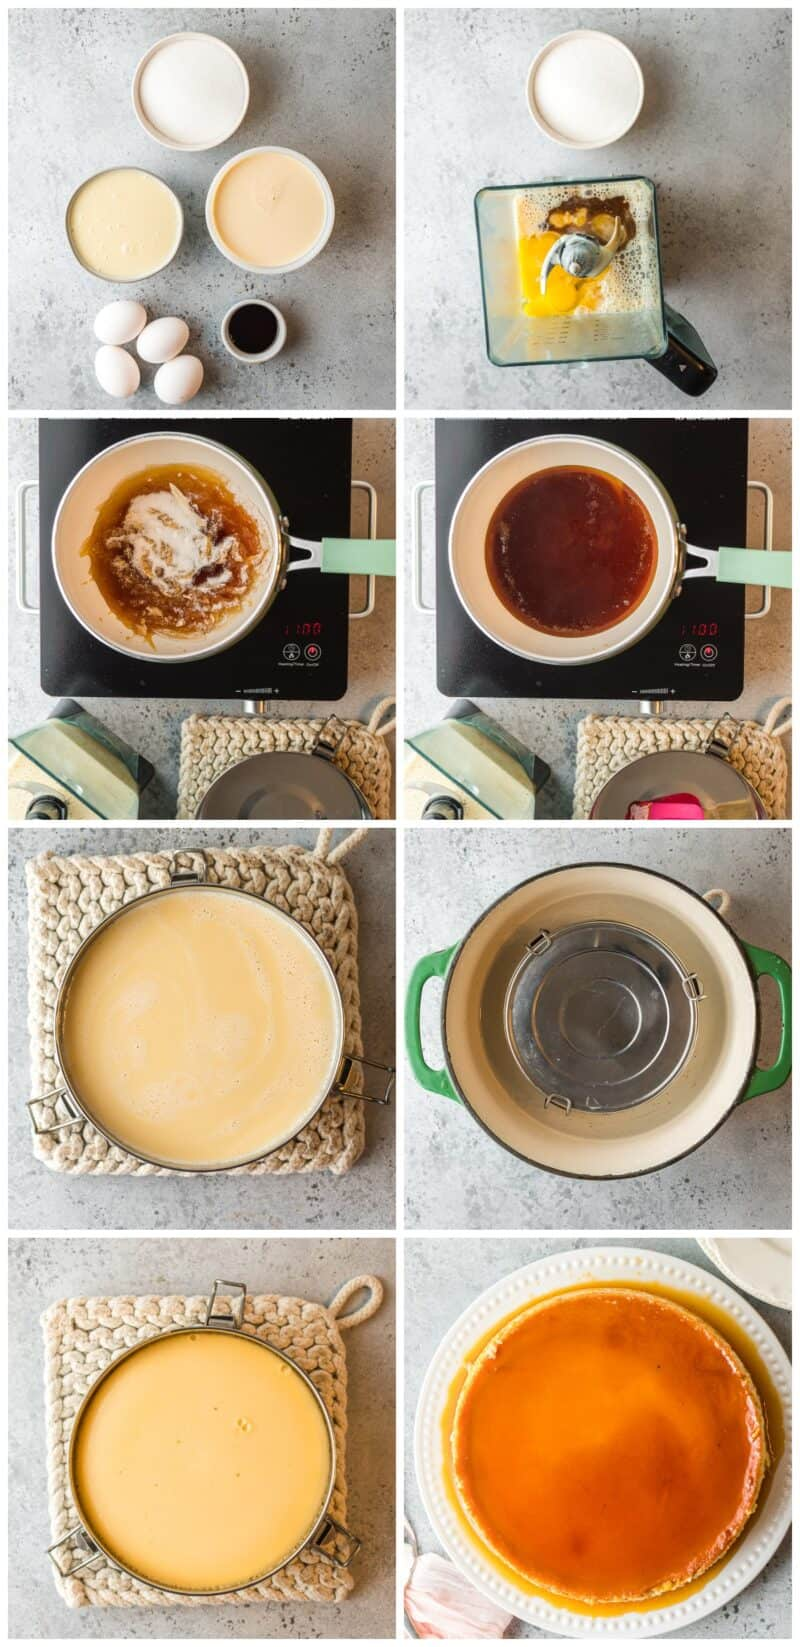 step by step photos for how to make flan